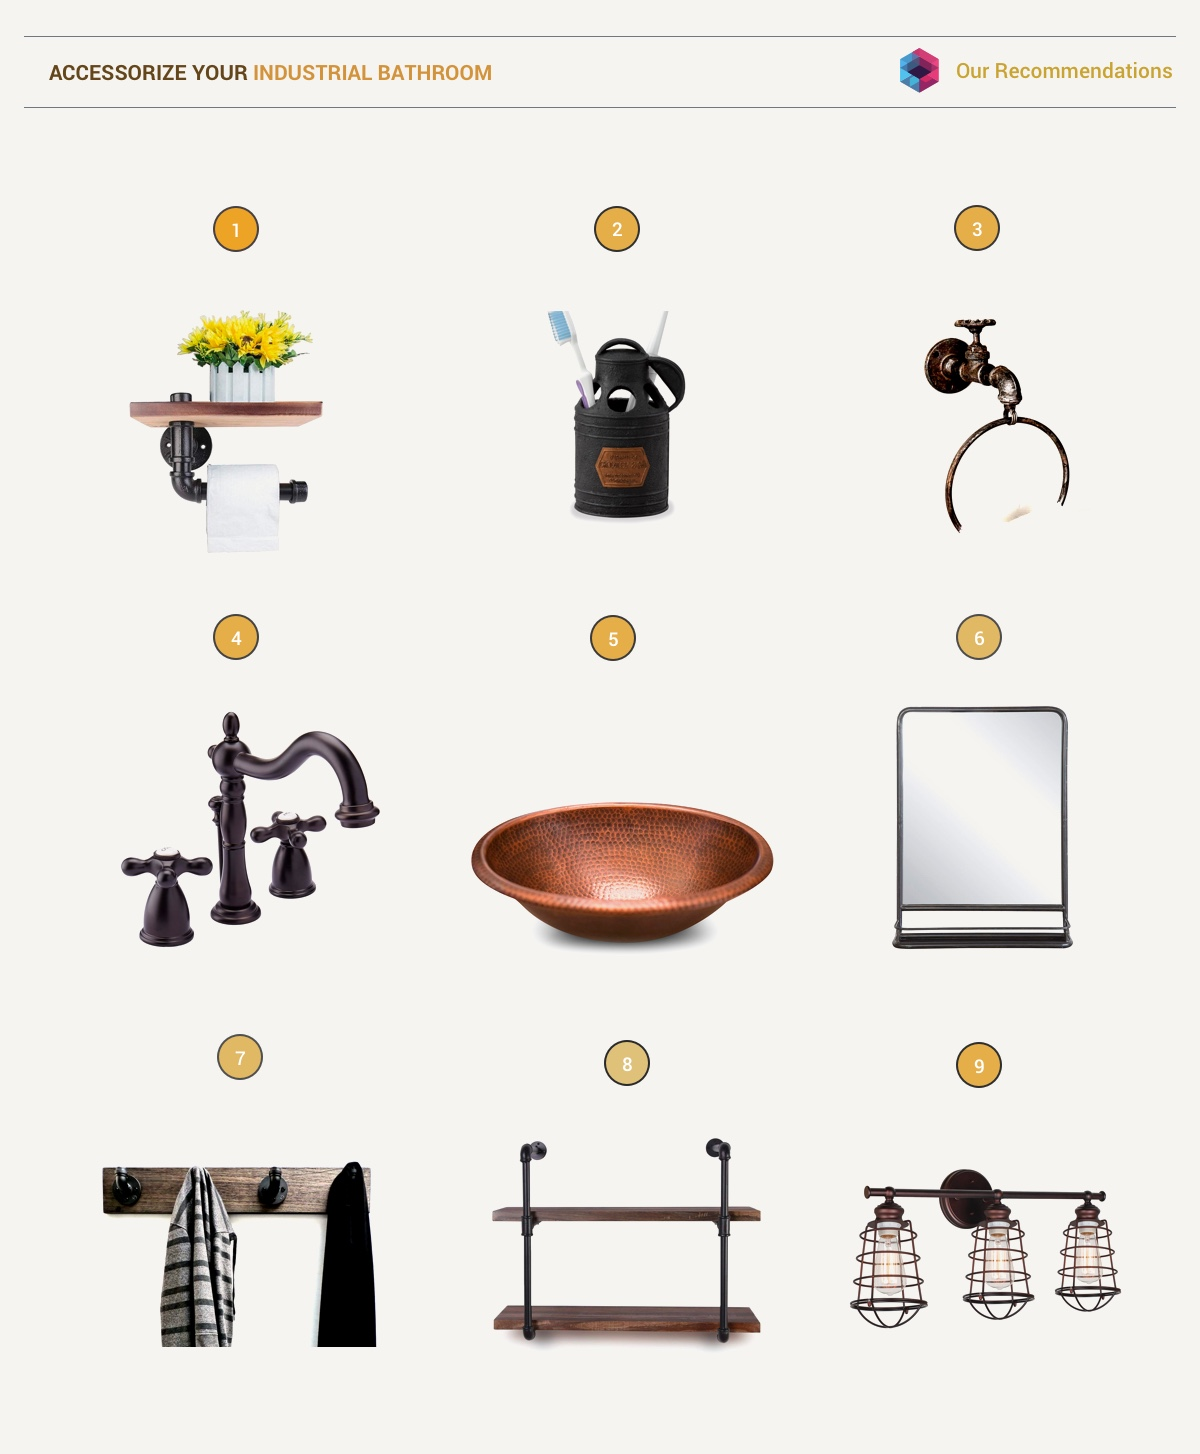 51 Industrial Style Bathrooms Plus Ideas & Accessories You Can Copy From Them images 50